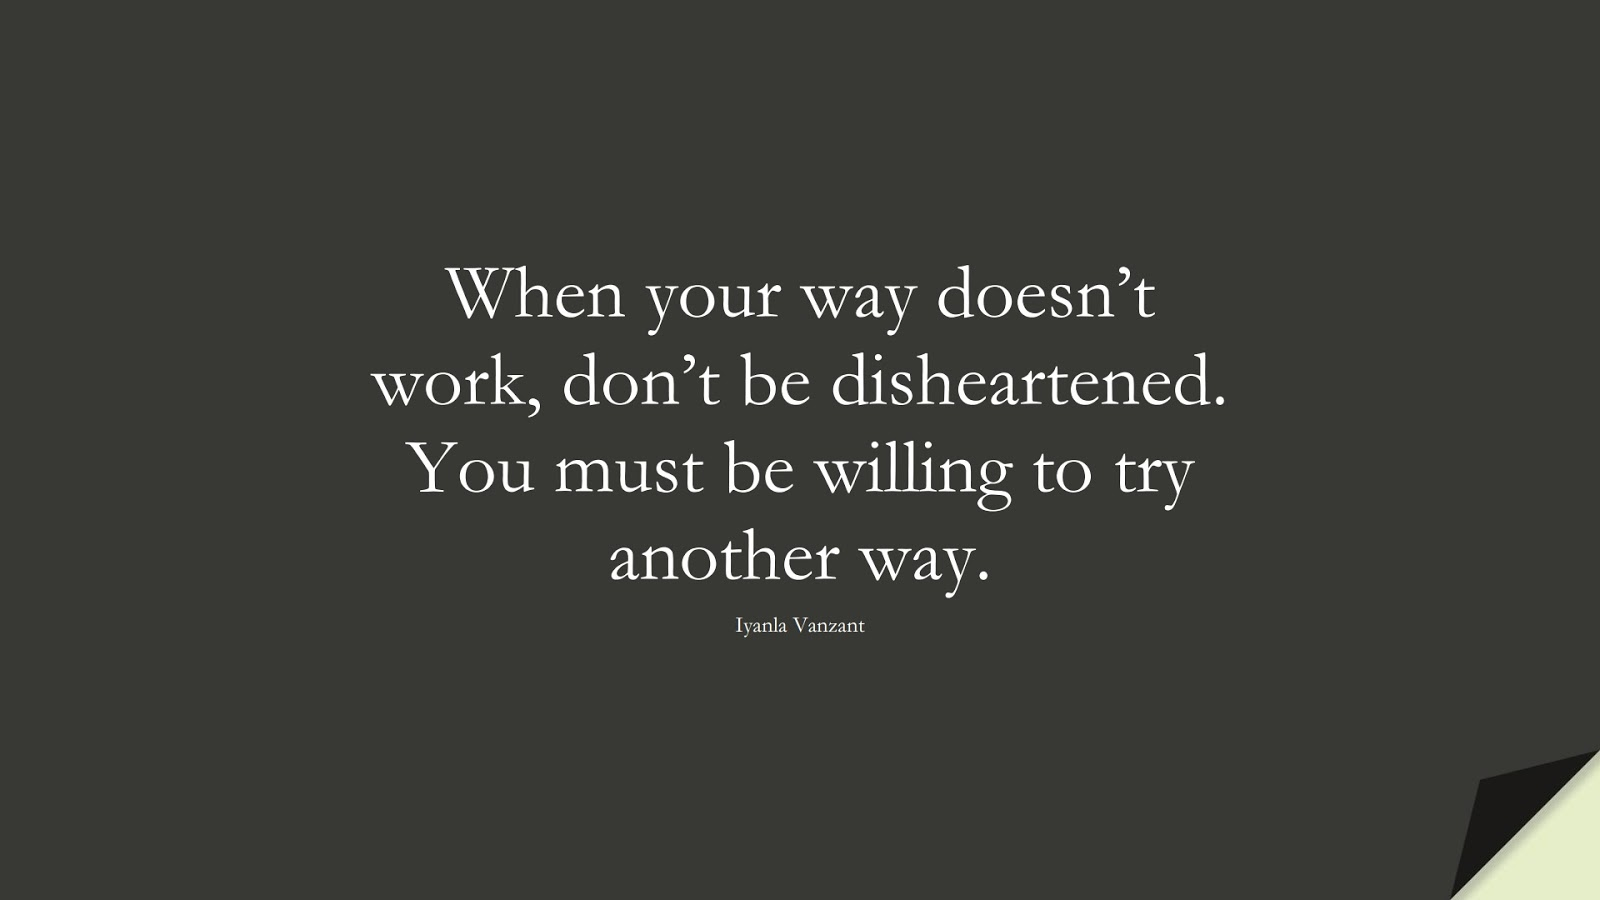 When your way doesn't work, don't be disheartened. You must be willing to try another way. (Iyanla Vanzant);  #EncouragingQuotes